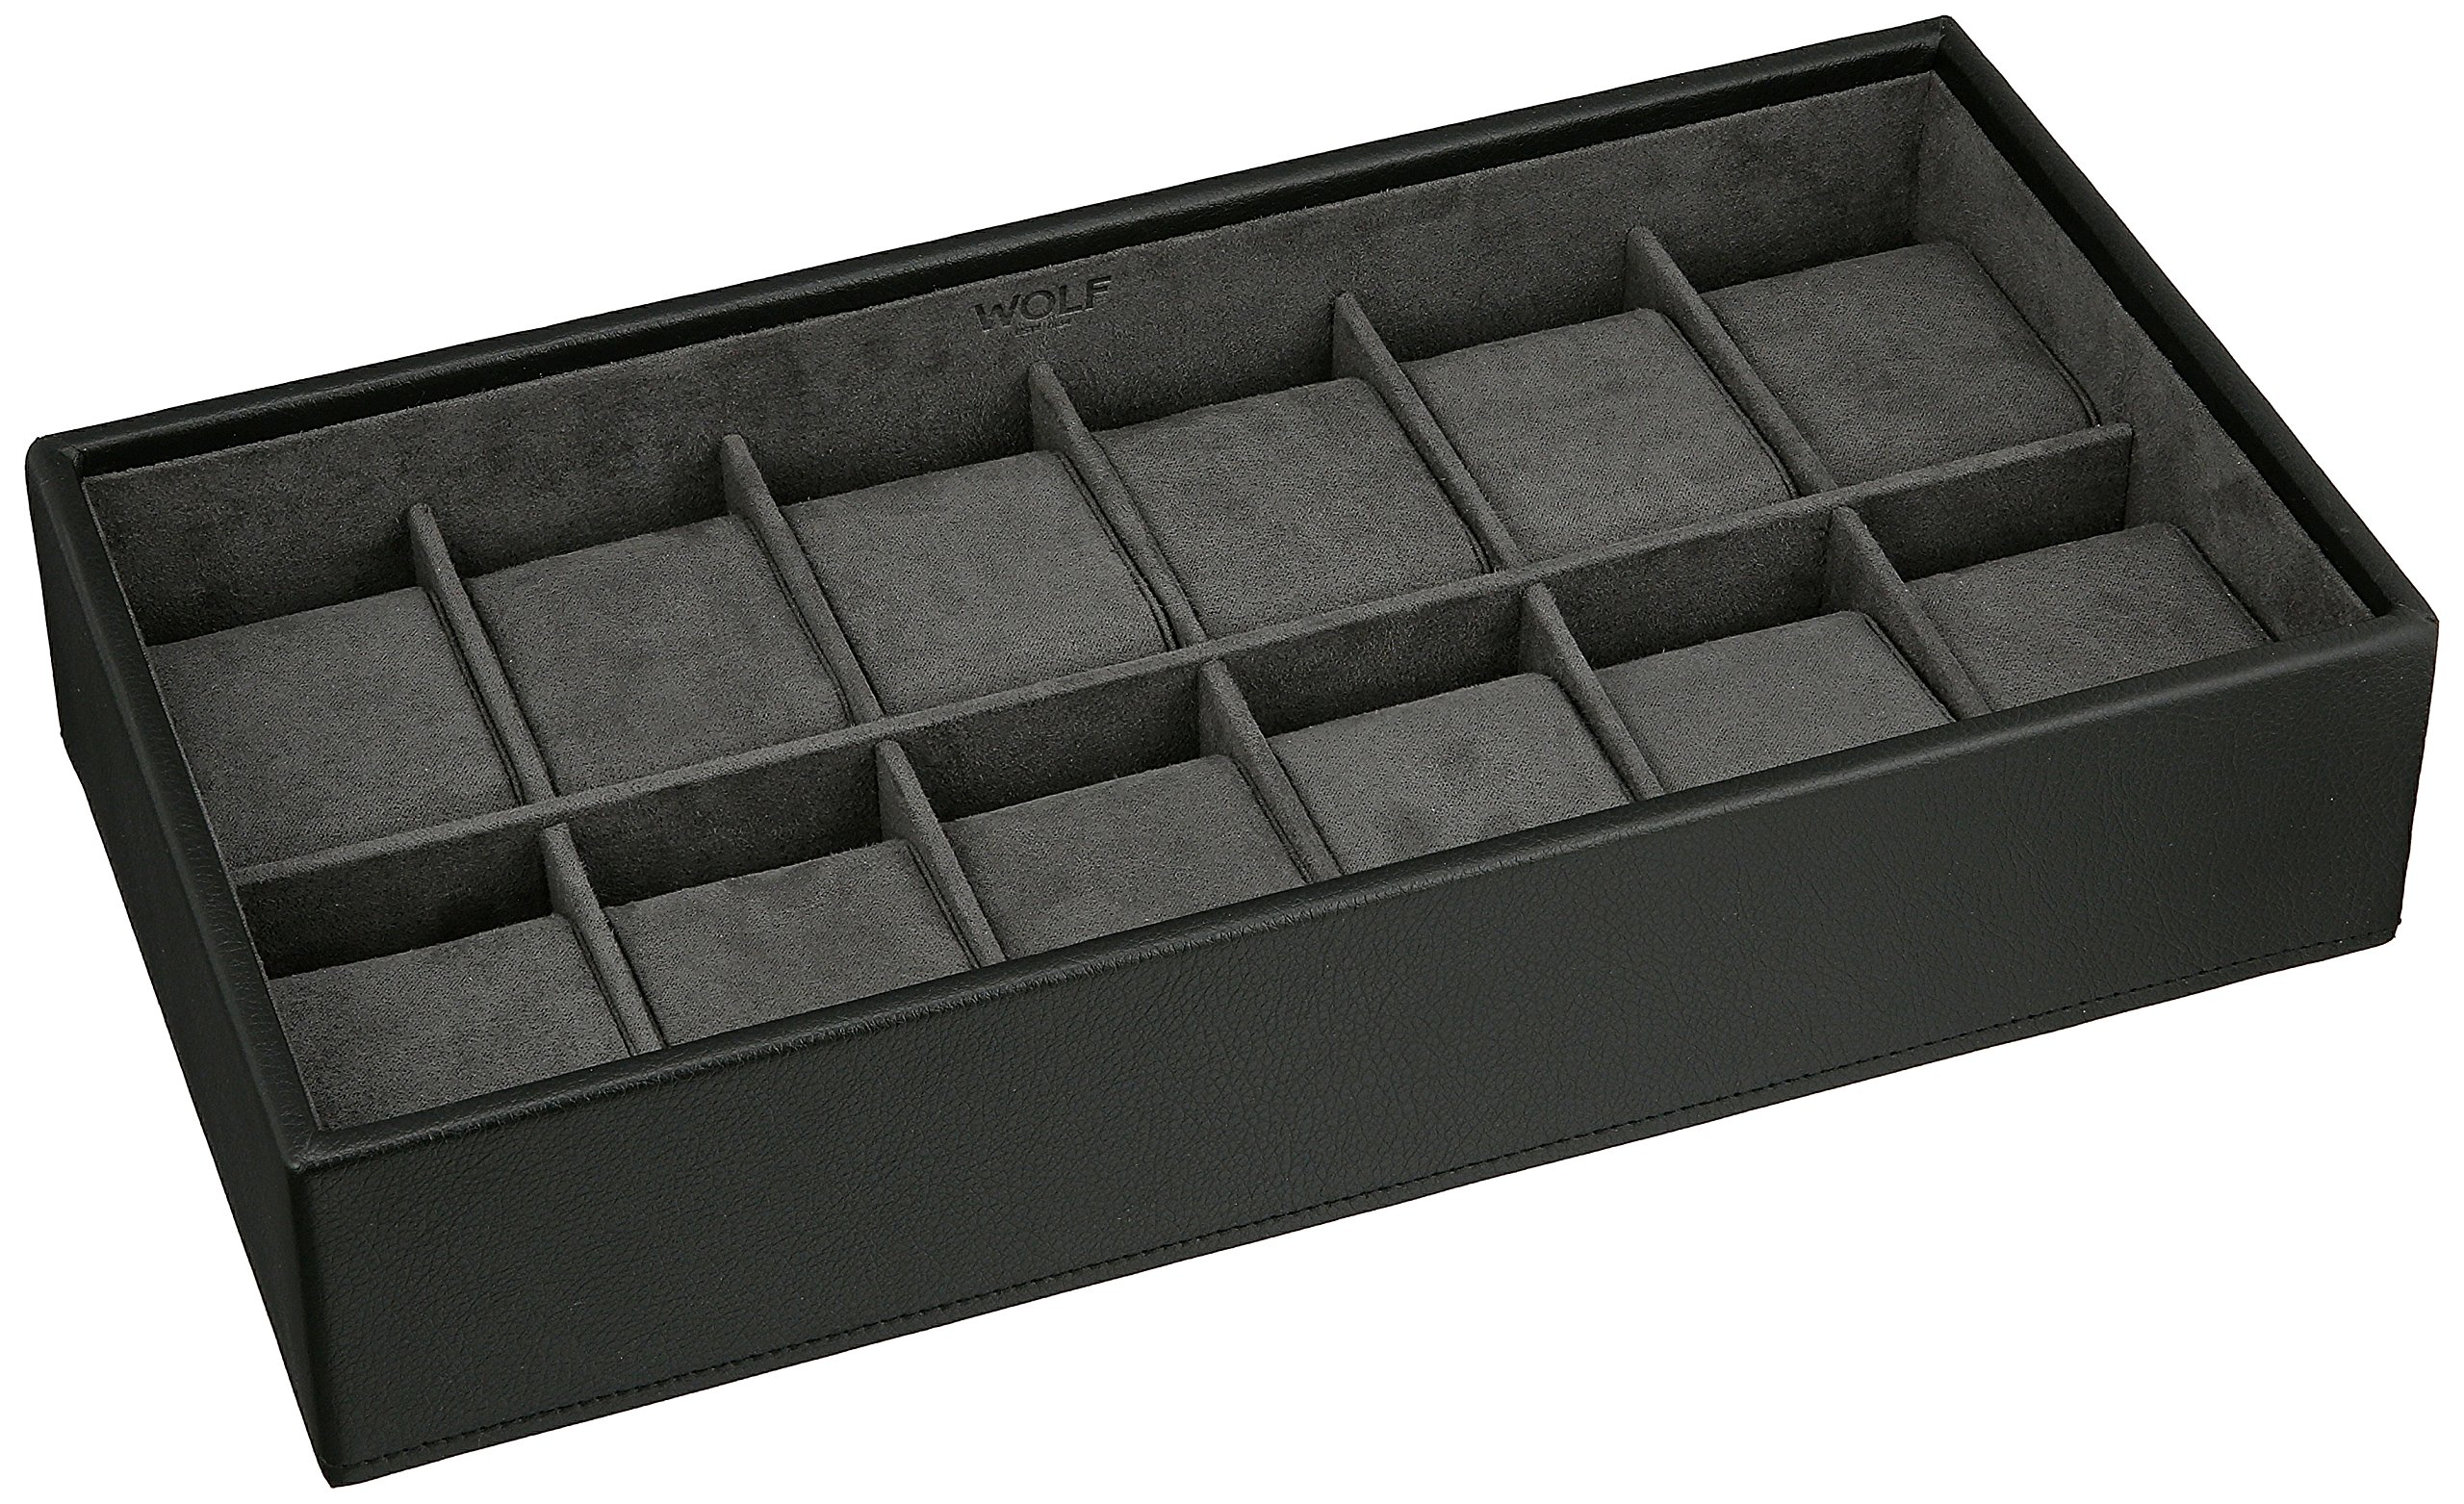 WOLF 309903 Stackable 12 Piece Watch Tray, Black